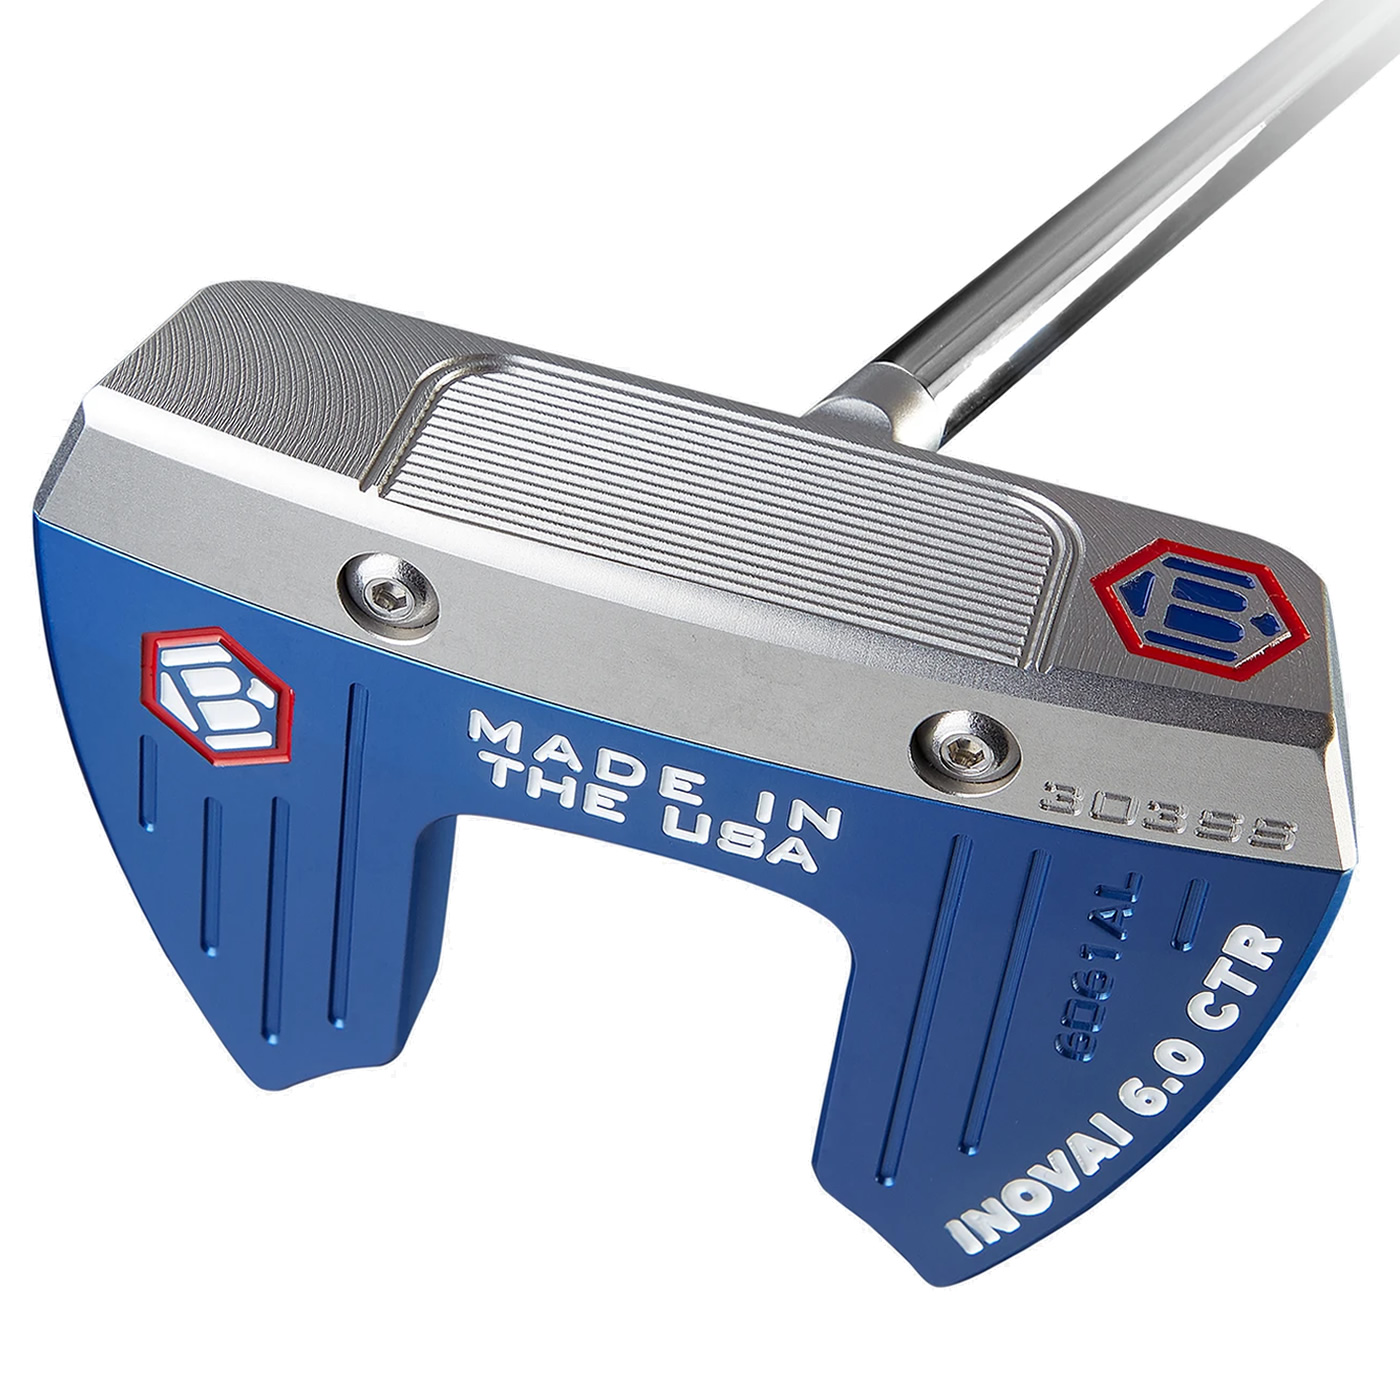 Bettinardi INOVAI 6.0 Centre Shaft Golf Putter